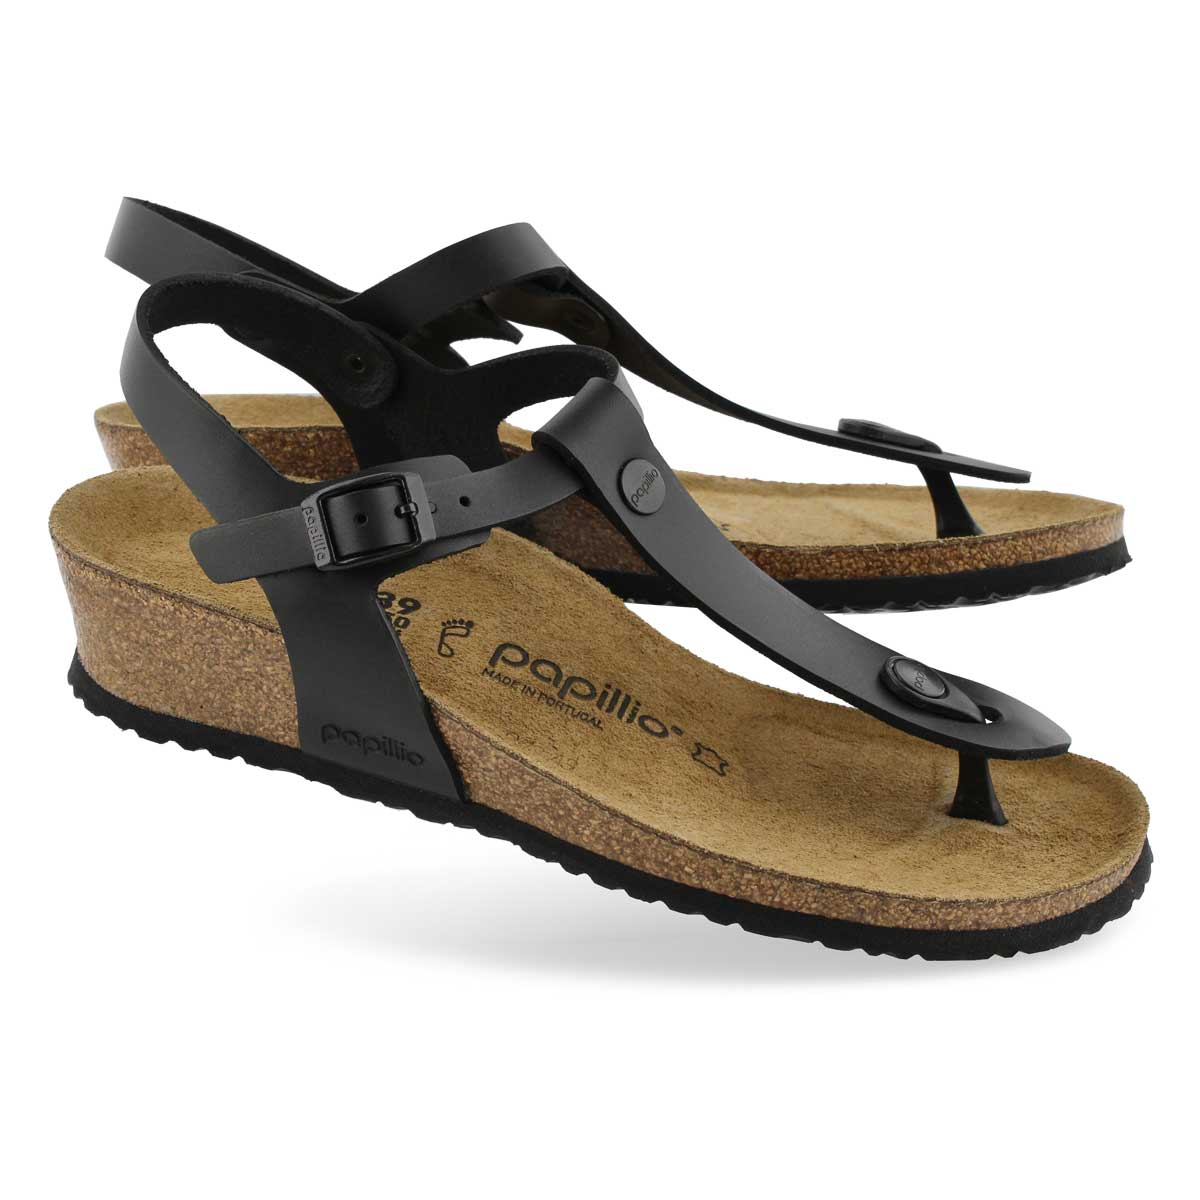 Lds Ashley LTR black wedge thong sandal